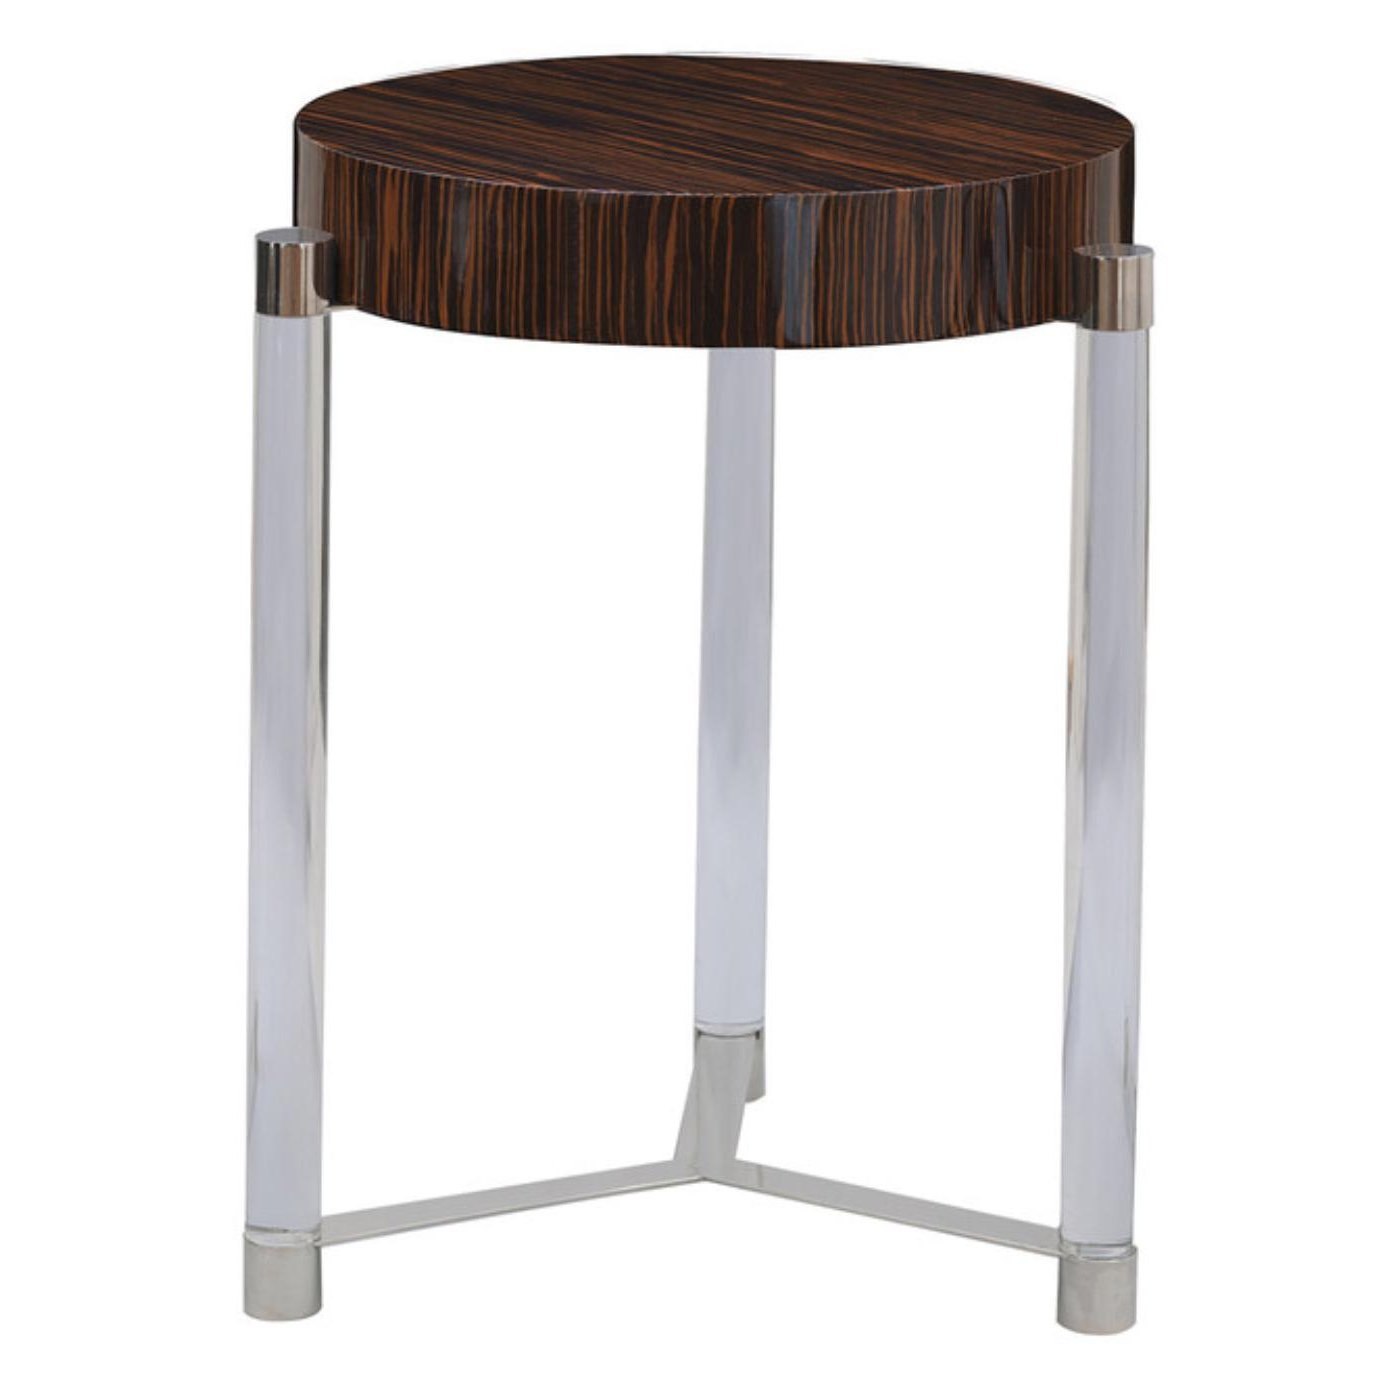 modern port maxwell accent table chairish outdoor tables dark wood side very small occasional furniture concrete dining best wall mounted nightstand black wrought iron bunnings